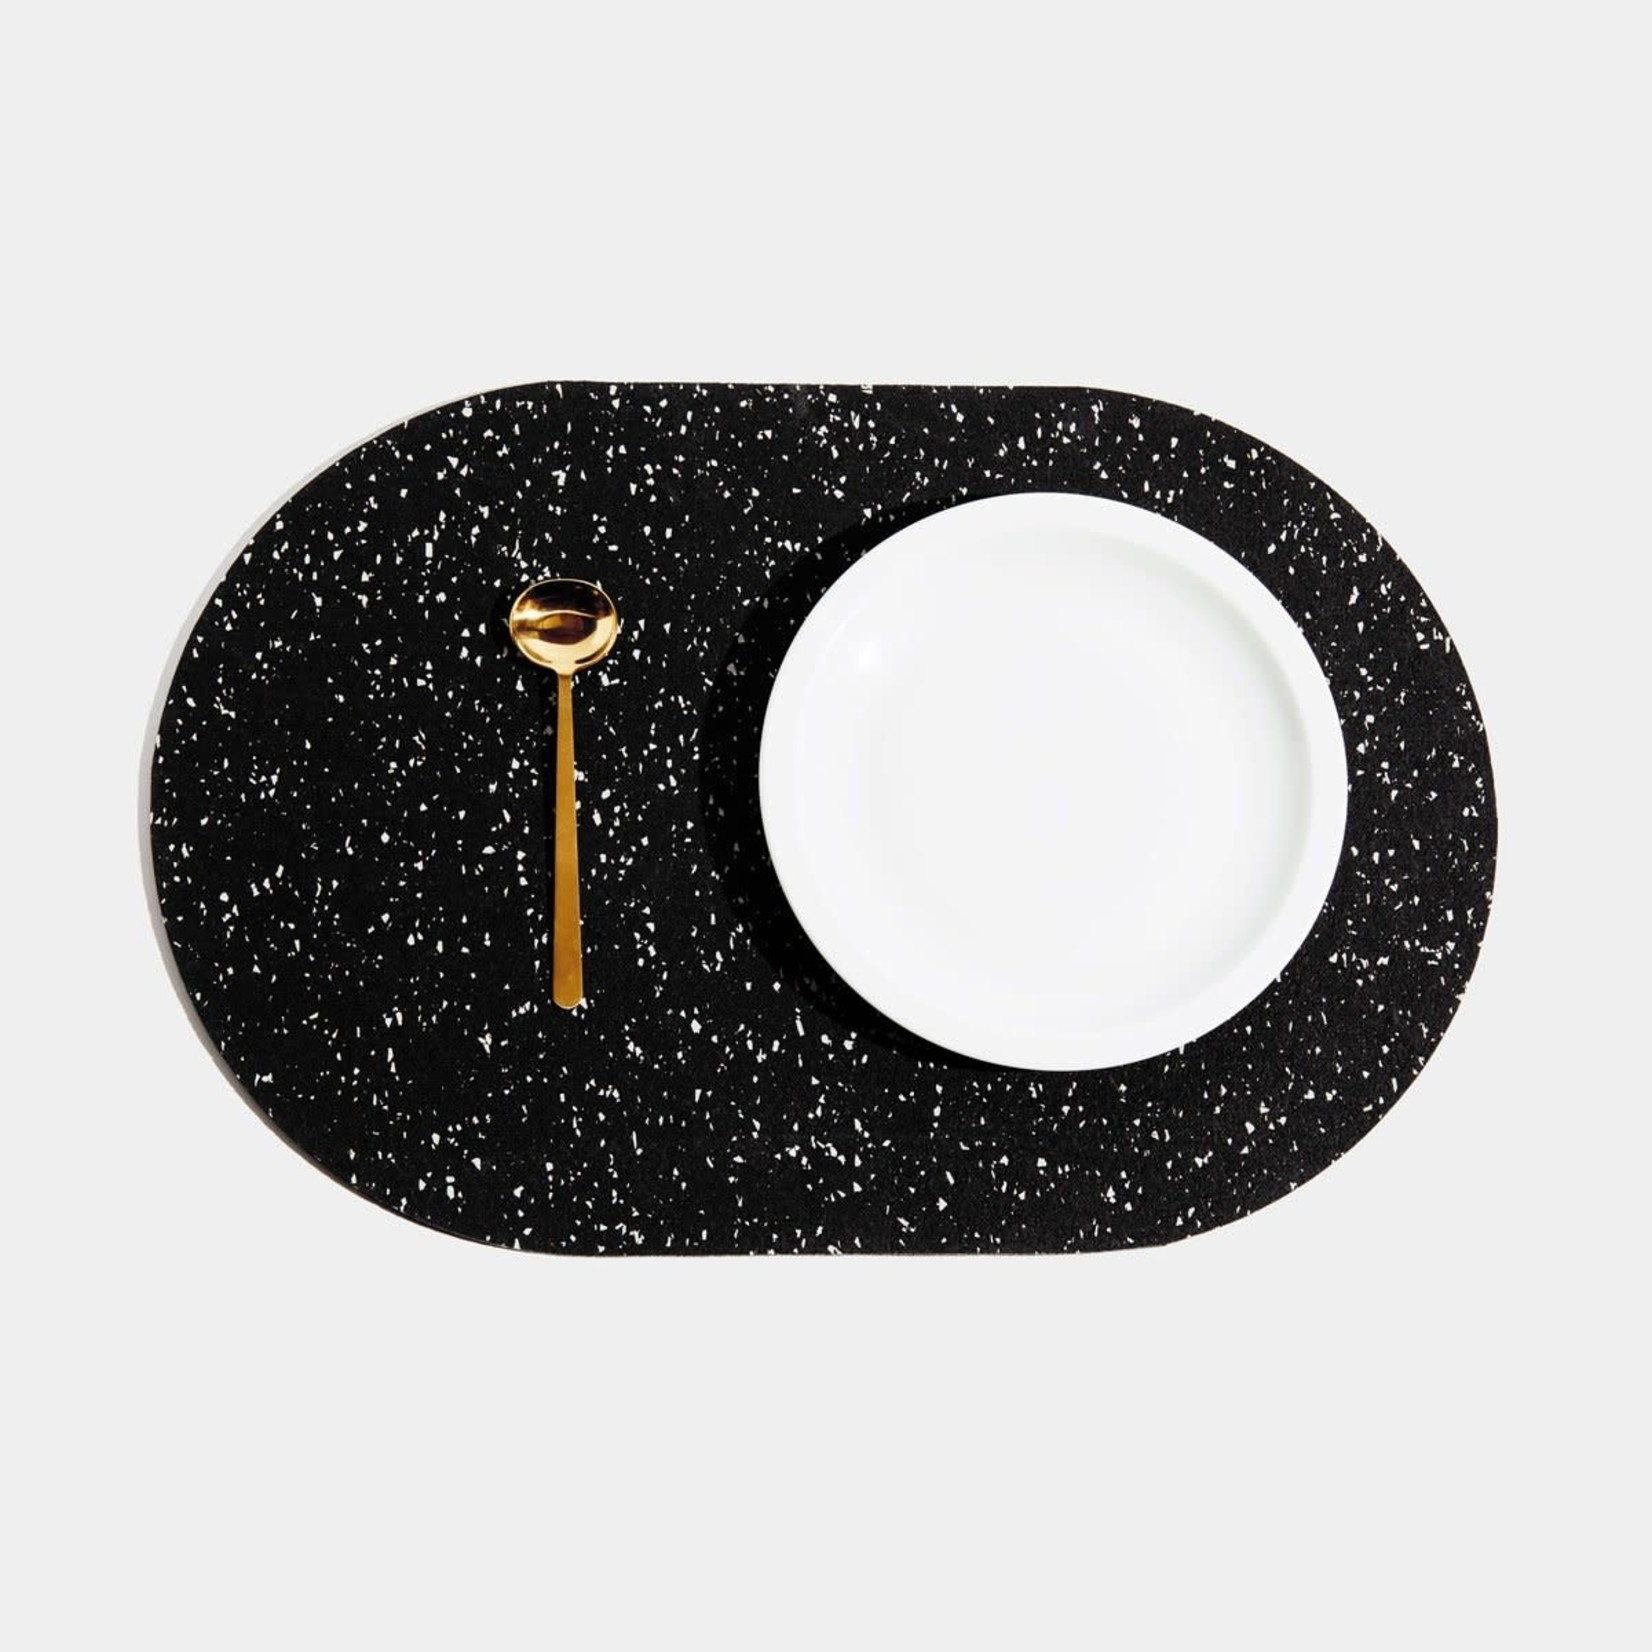 Slash Objects Slashed Objects Capsule Placemat Speckled Black